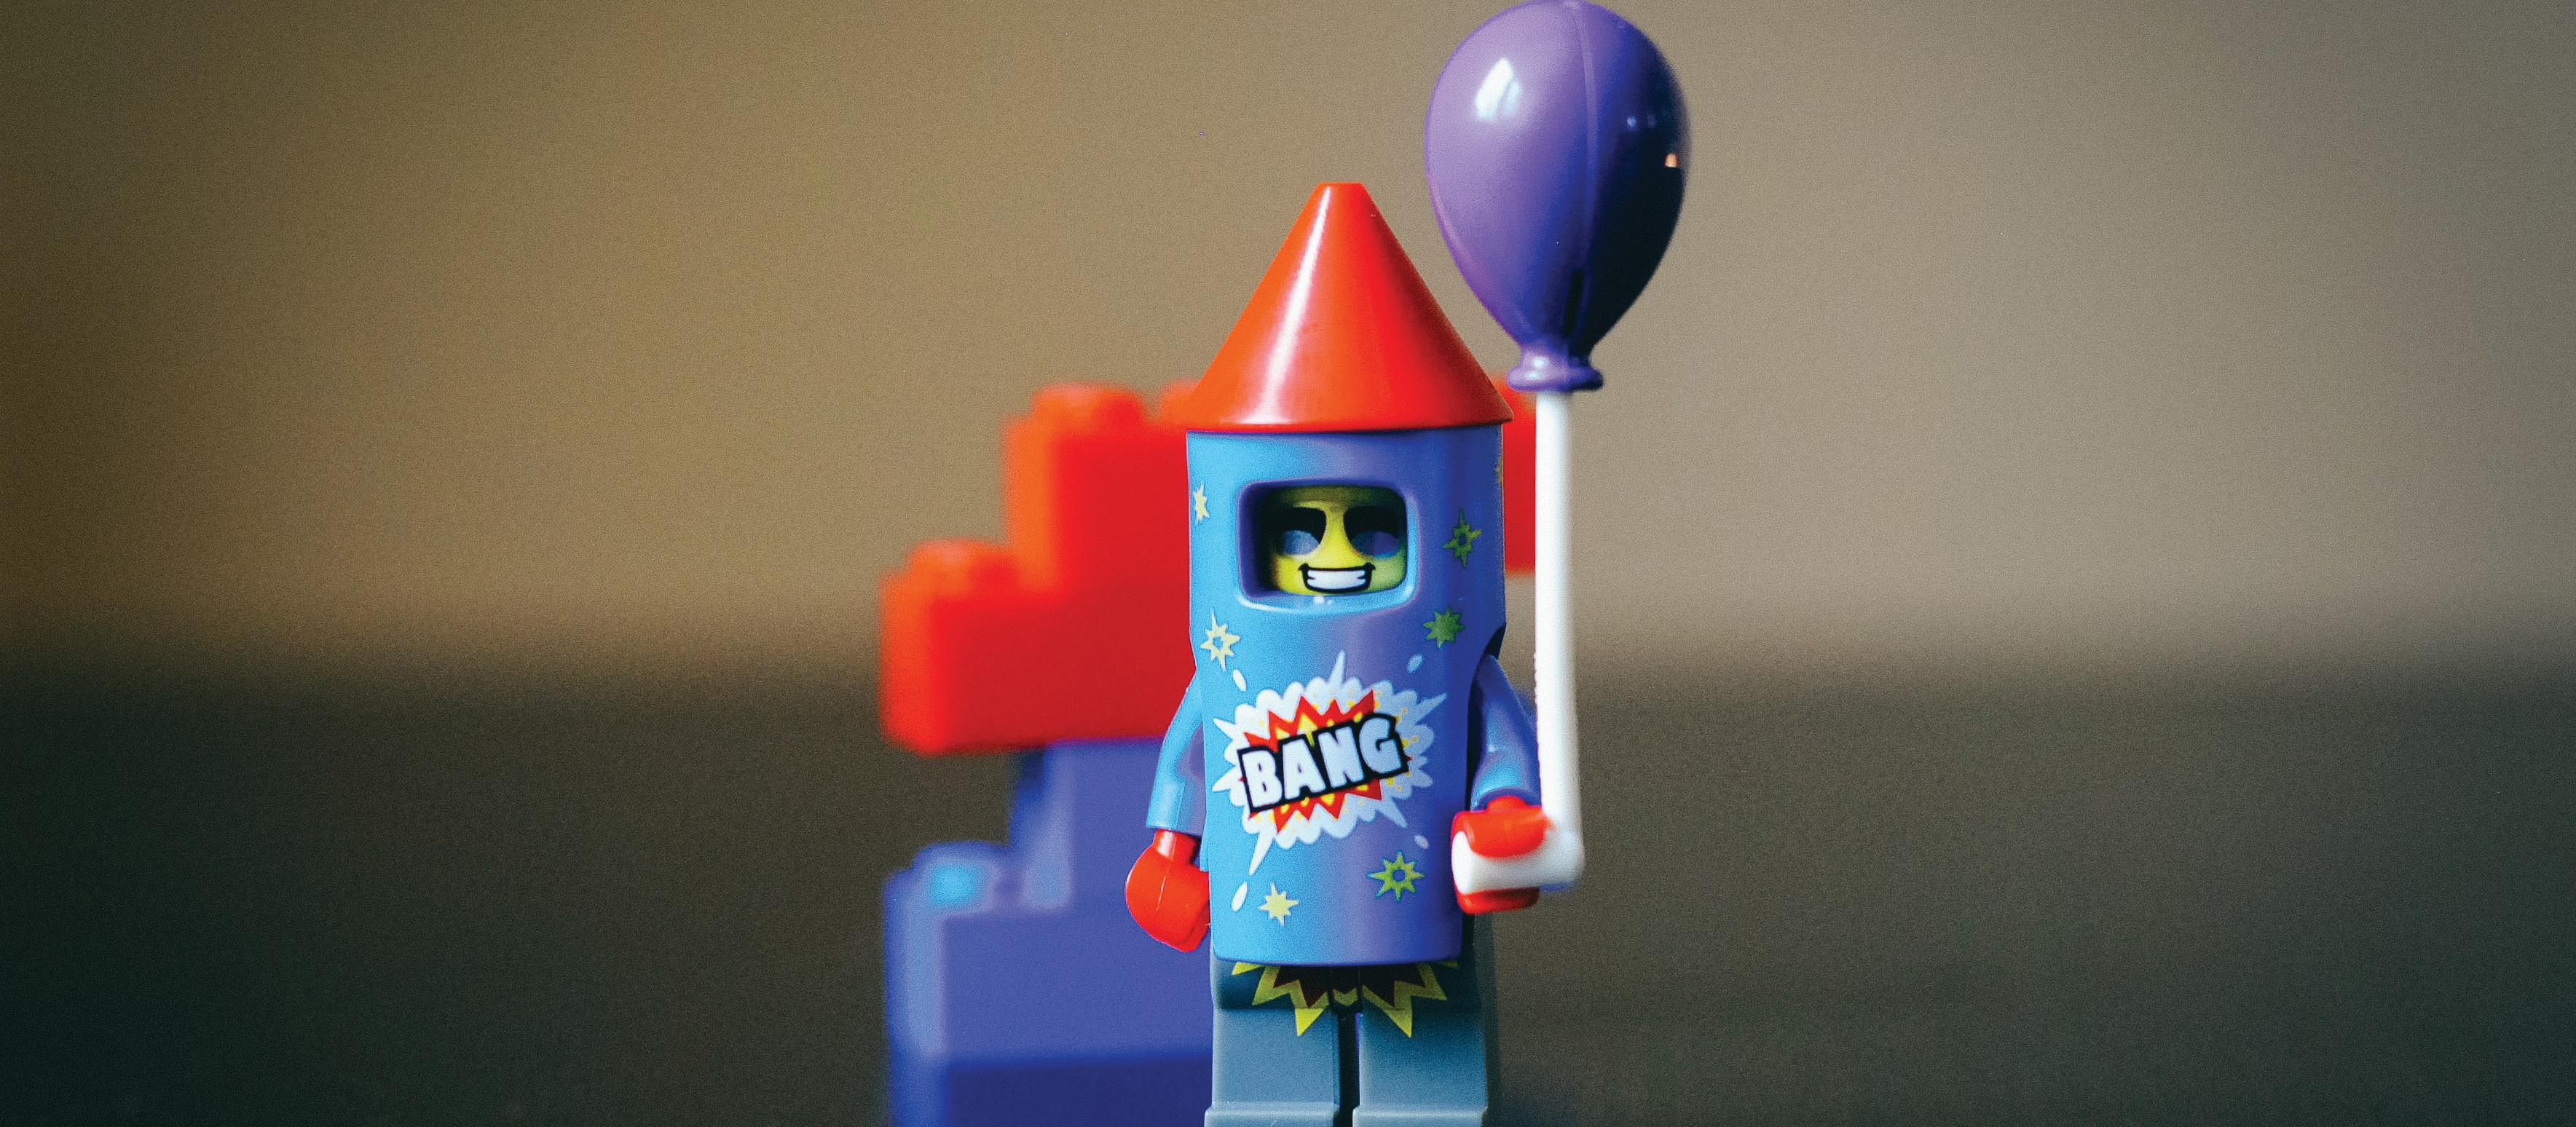 Lego man, balloon, bang